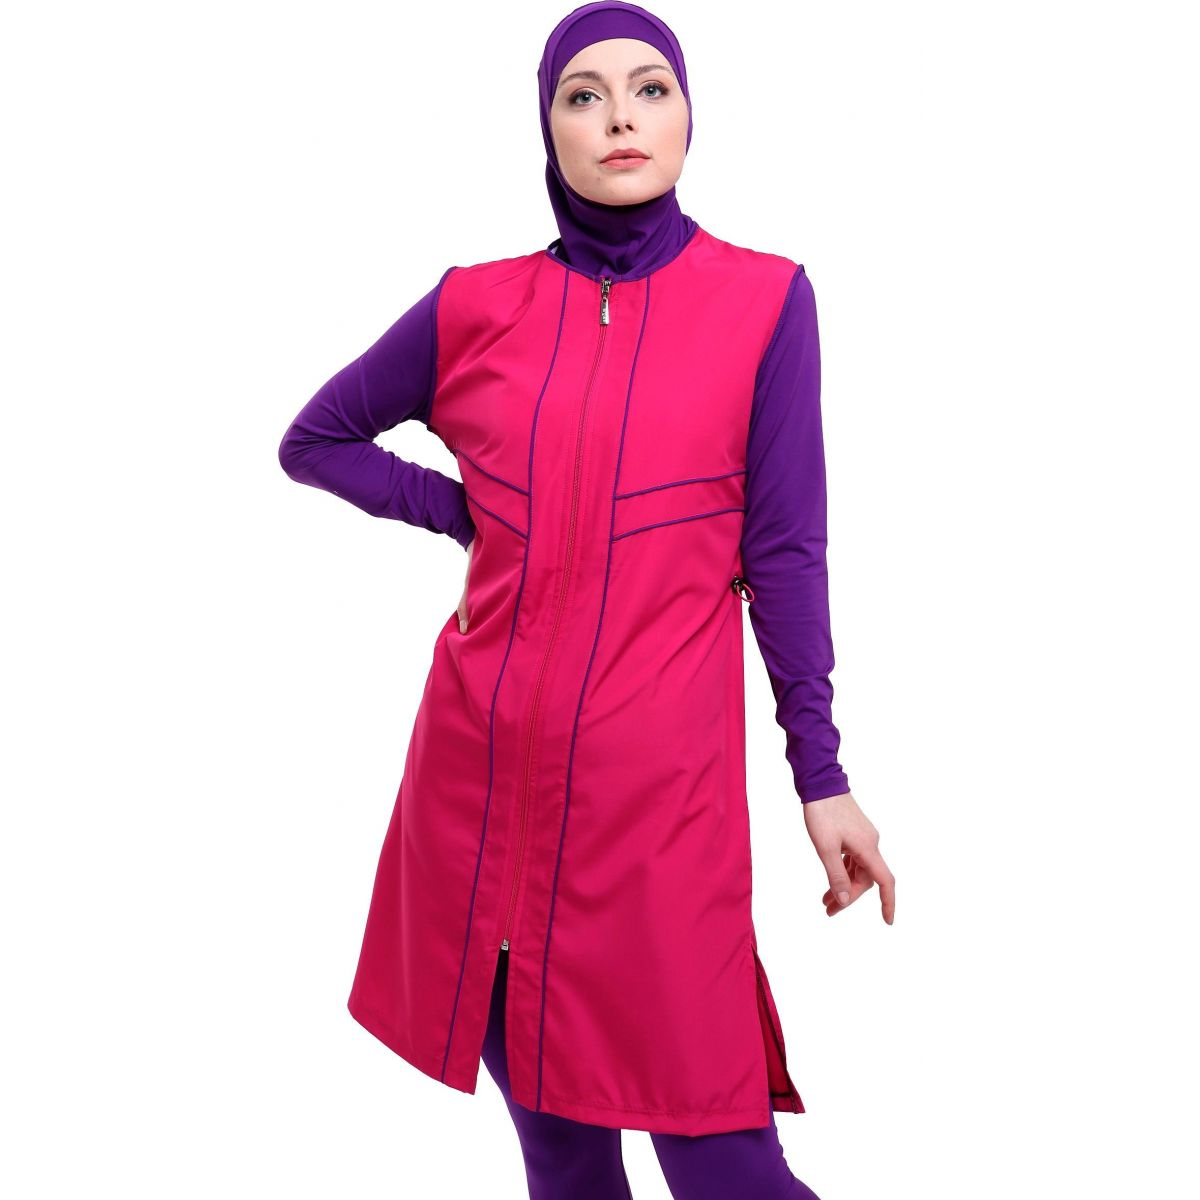 Argisa 7106 Long Micro Sleeves Piping Full Hijab Swimwear S-5XL Plus Size Muslim Hijab Islamic Swimsuit Burkini Turkey Full Cover